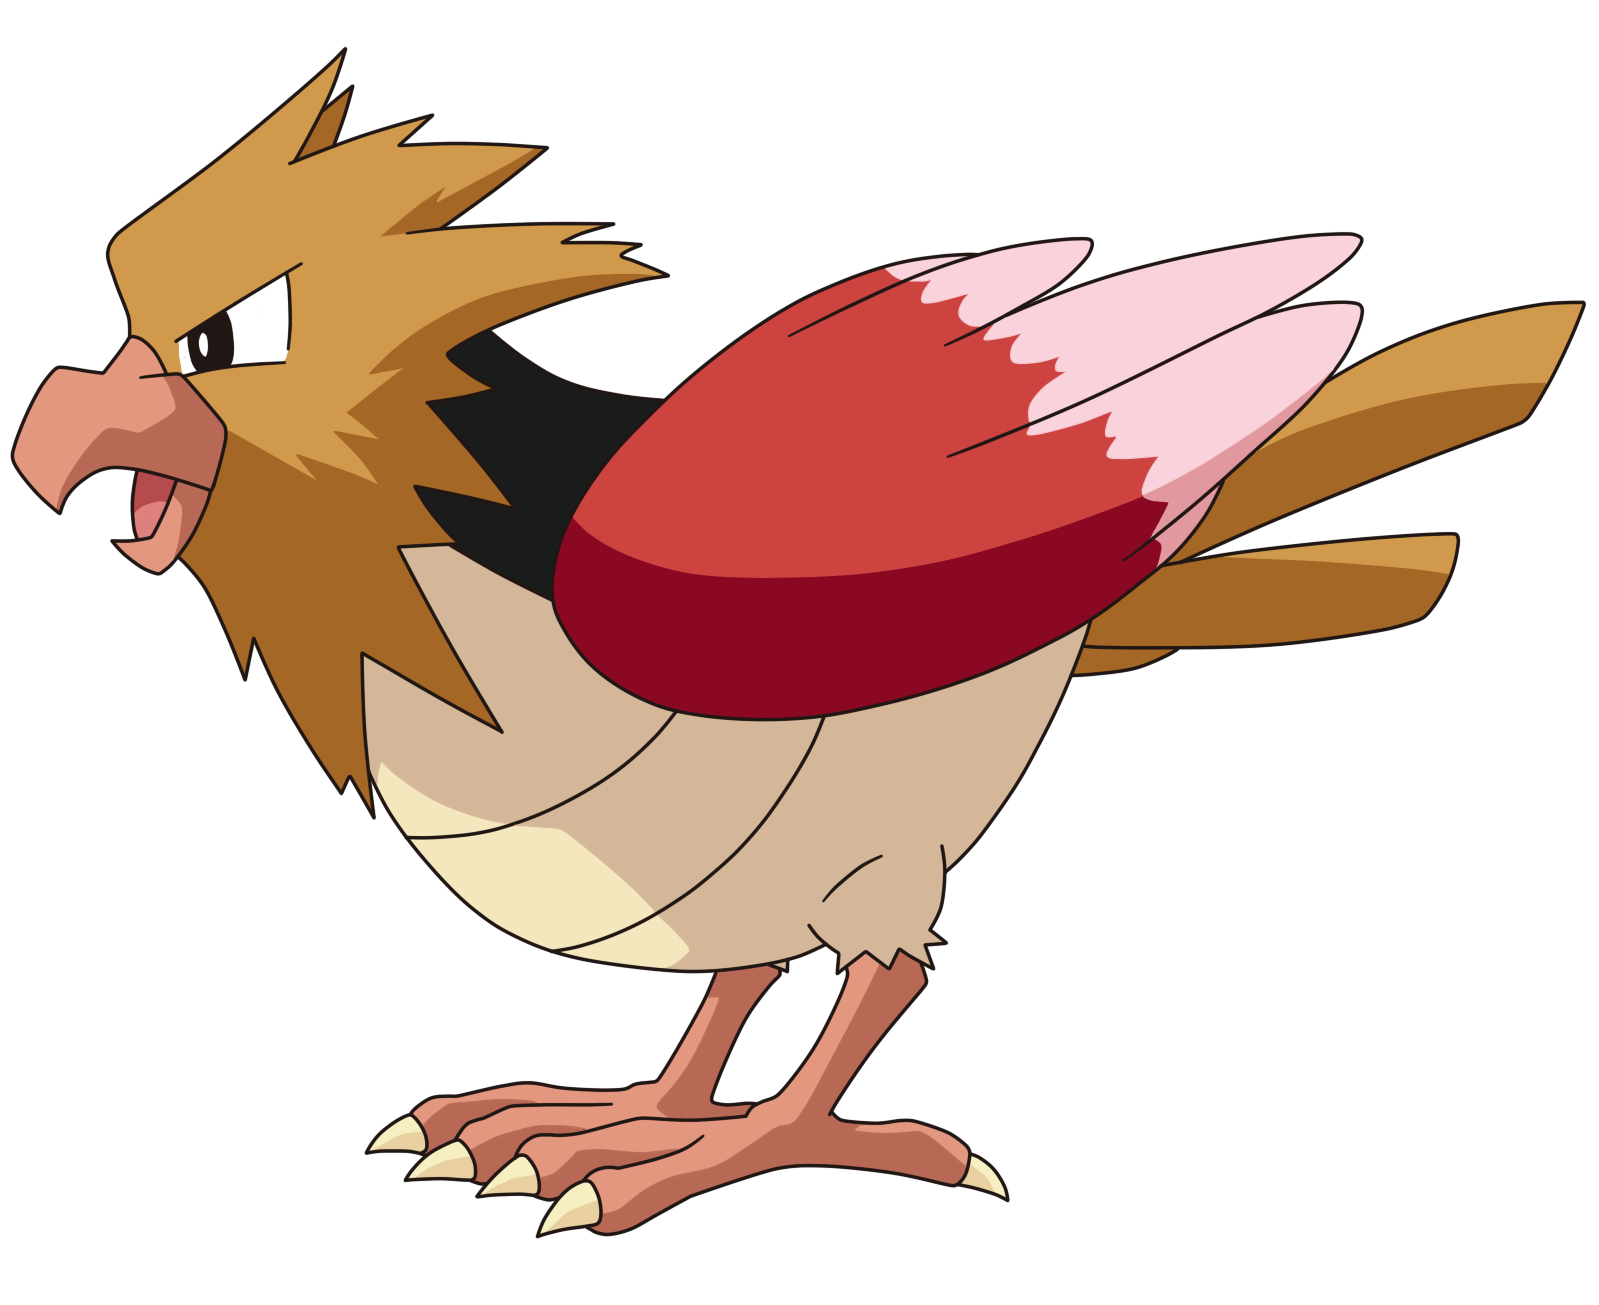 Pokemon 2022 Shiny Fearow Pokedex Evolution Moves